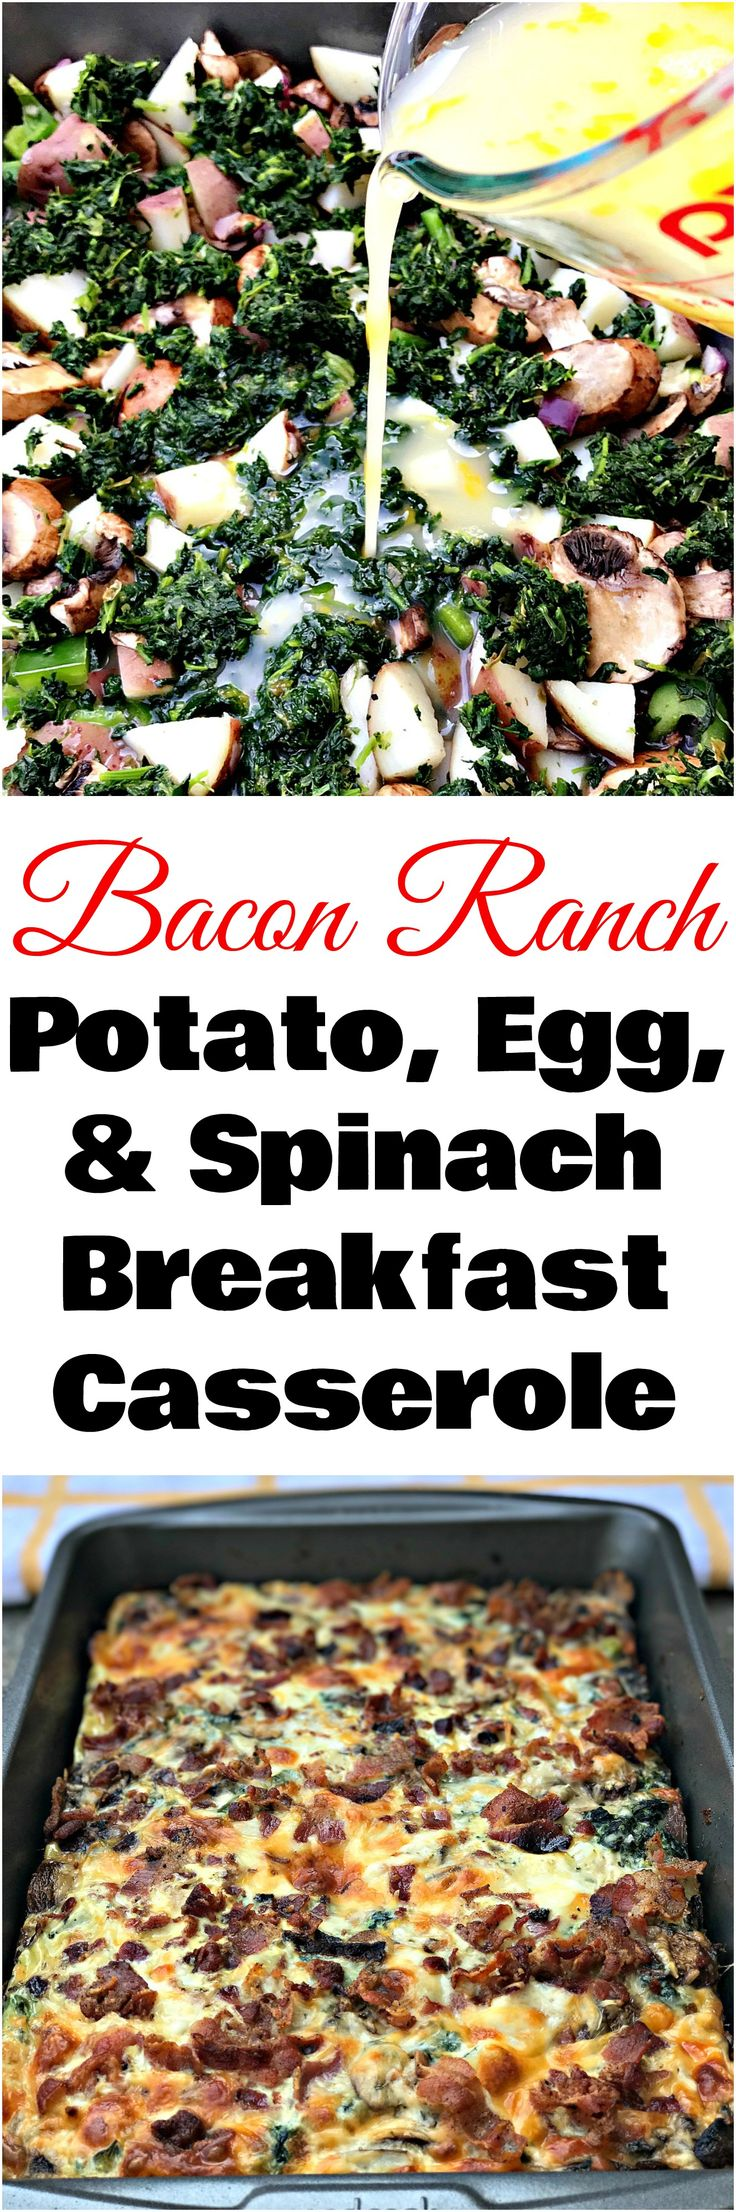 Bacon Ranch, Potato, Egg, and Spinach Breakfast Casserole is the perfect quick and easy make-ahead, meal-prep dish loaded with cheese, mushrooms, and peppers.